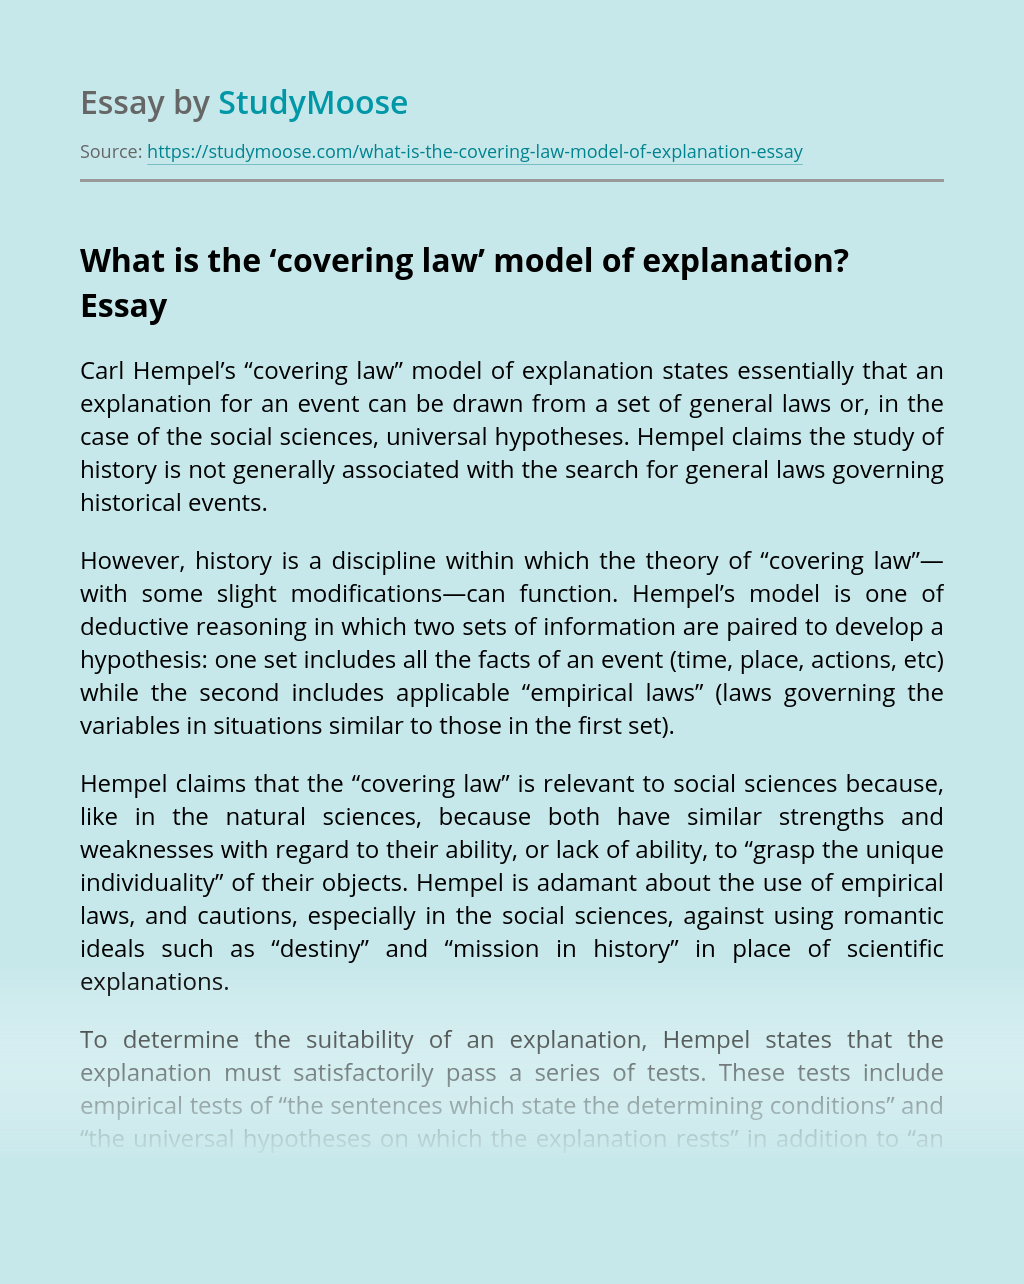 What is the 'covering law' model of explanation?